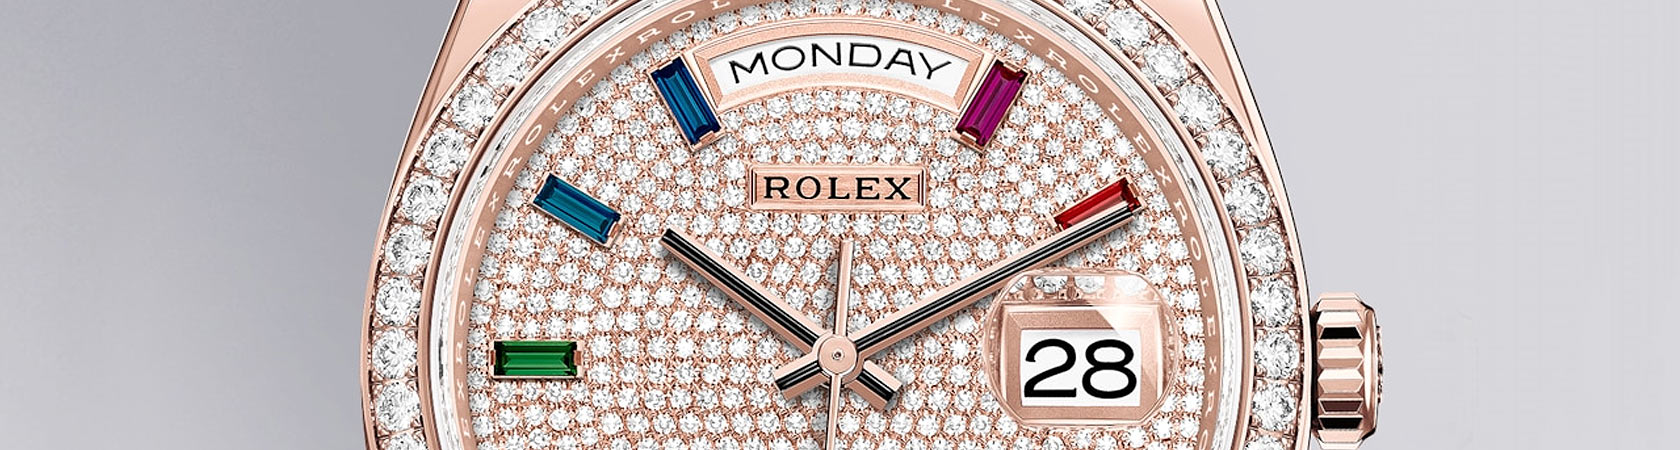 Rolex Oyster Perpetual Day-Date 36 in 18ct Everose Gold - Kee Hing Hung